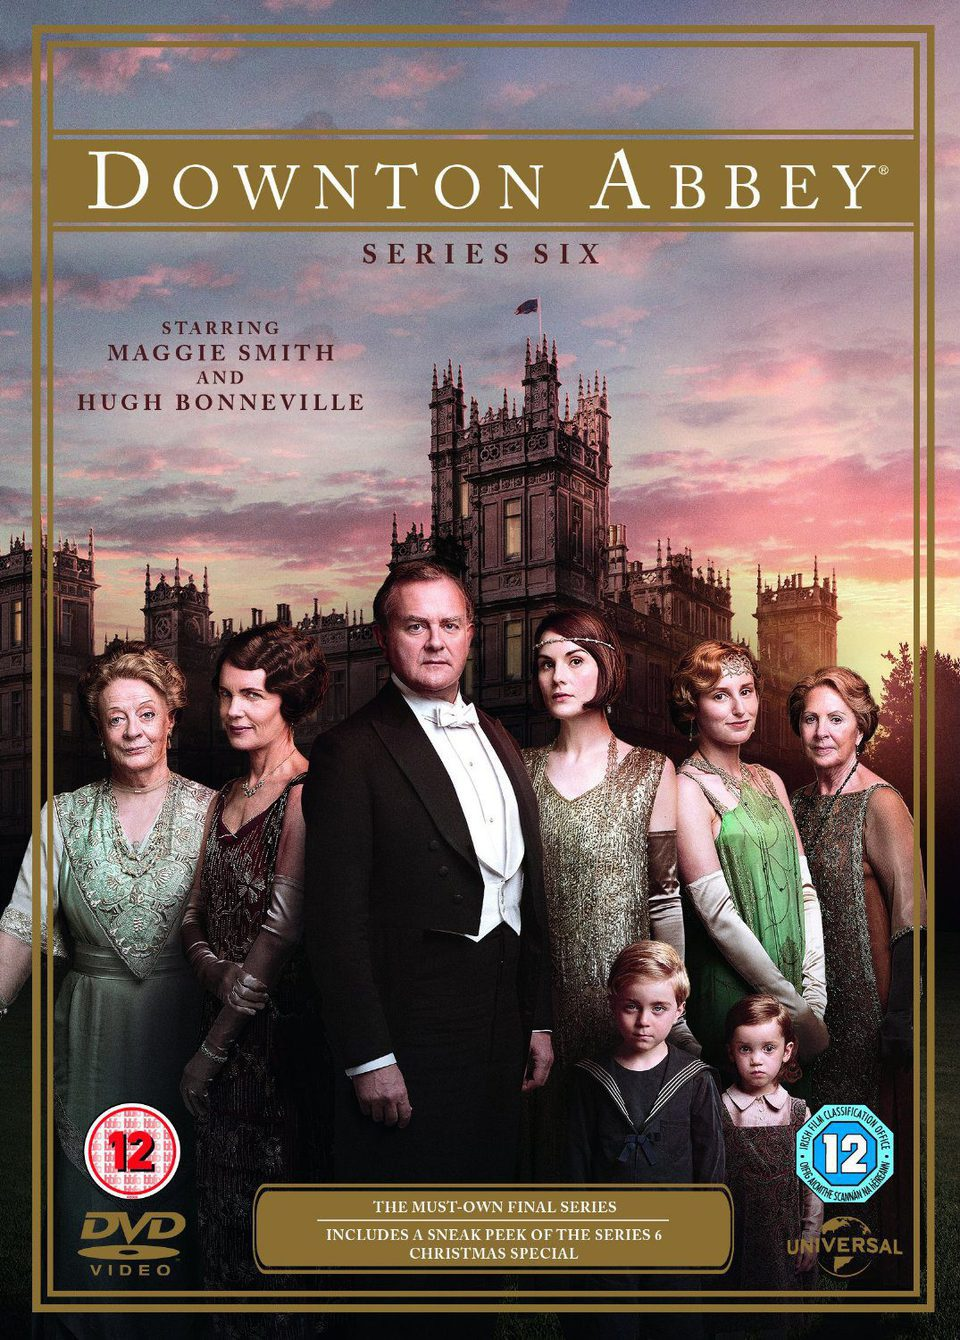 Cartel Temporada 6 de 'Downton Abbey'